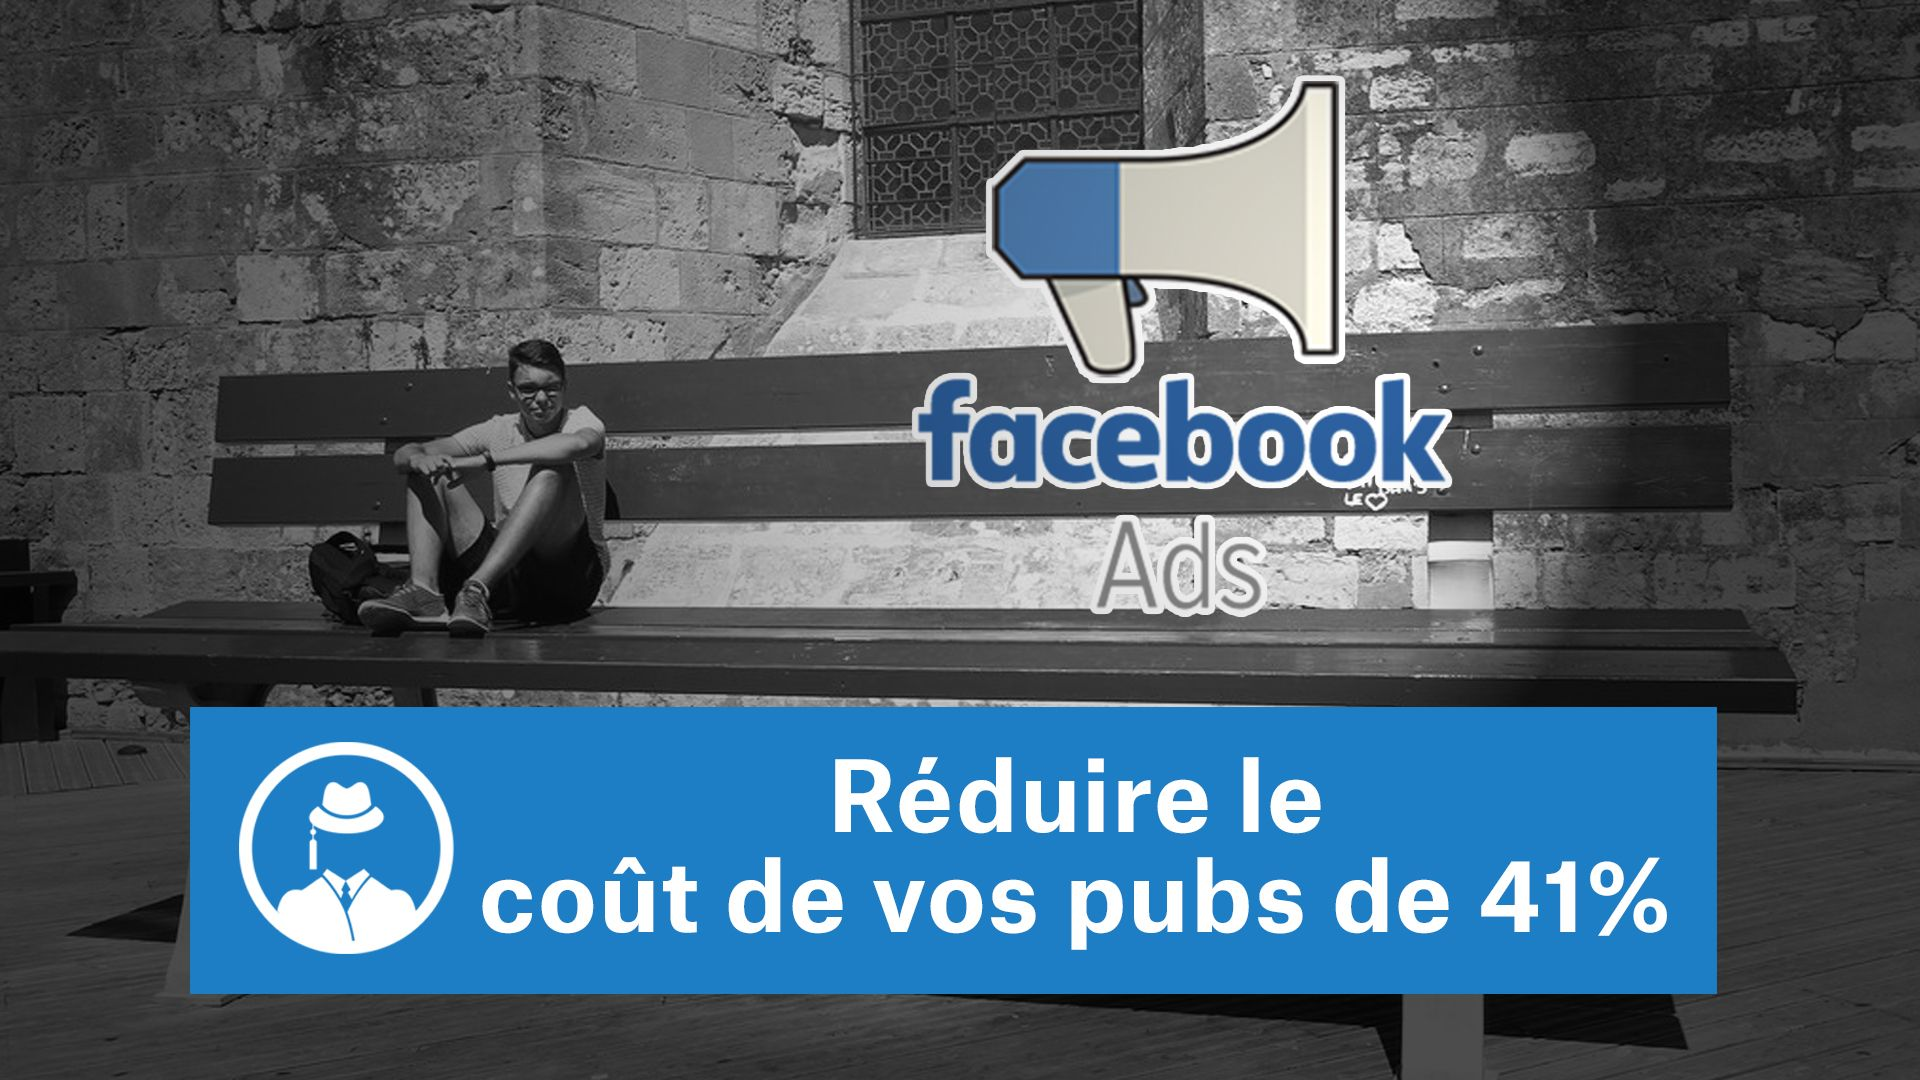 Réduire le coûts de vos pubs Facebook de 41% #GrowthHacking #WebMarketing #FormationGrowthHacking #CentreDeFormationFrance #TunnelAARRR #AARRR #SocialMedia #CommunityManagement #SEO #MarketingDigital #SiteWeb #FacebookAds